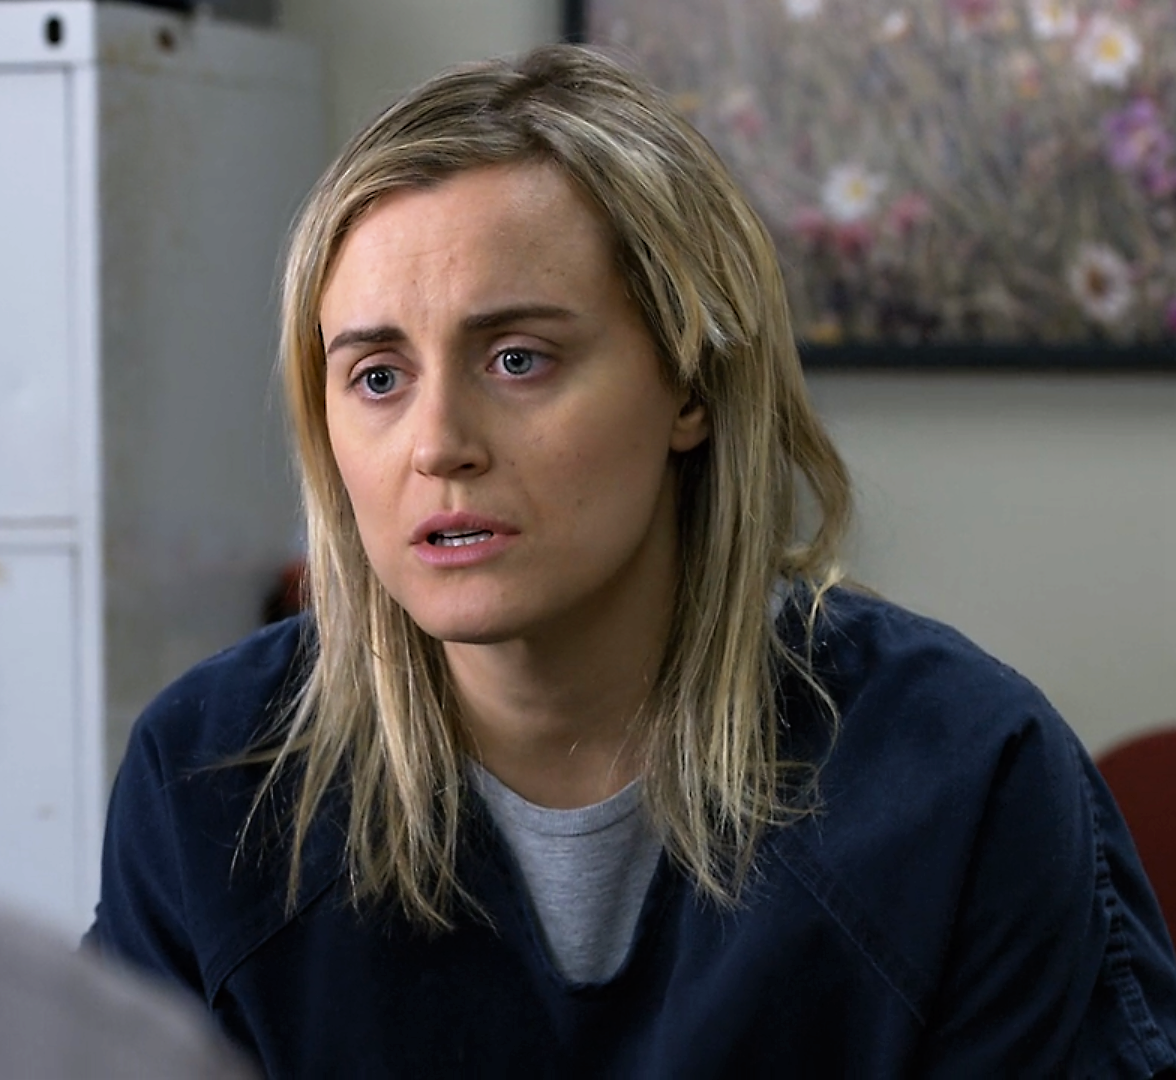 Piper Chapman | Orange Is the New Black Wiki | FANDOM powered by Wikia